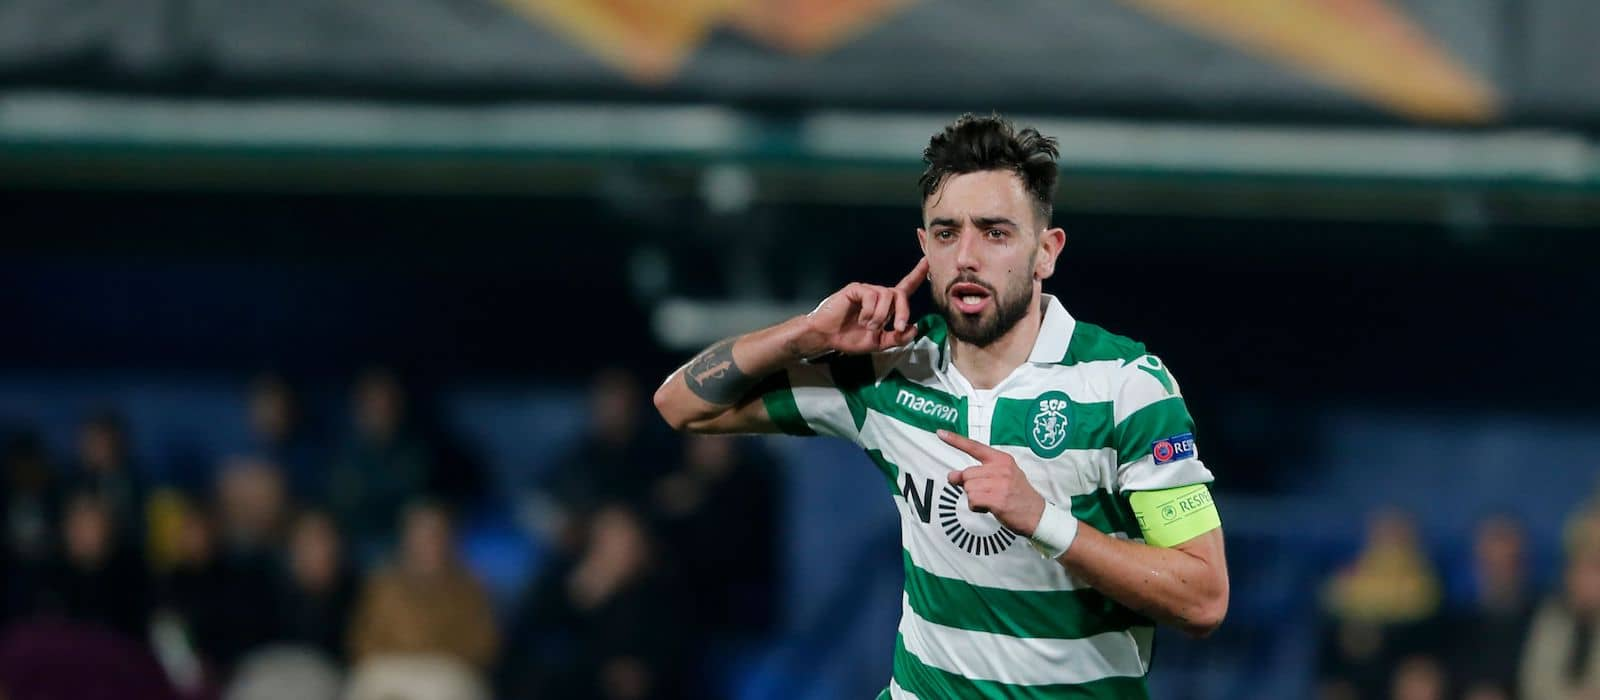 Sporting Lisbon open to selling Bruno Fernandes amid Manchester United interest